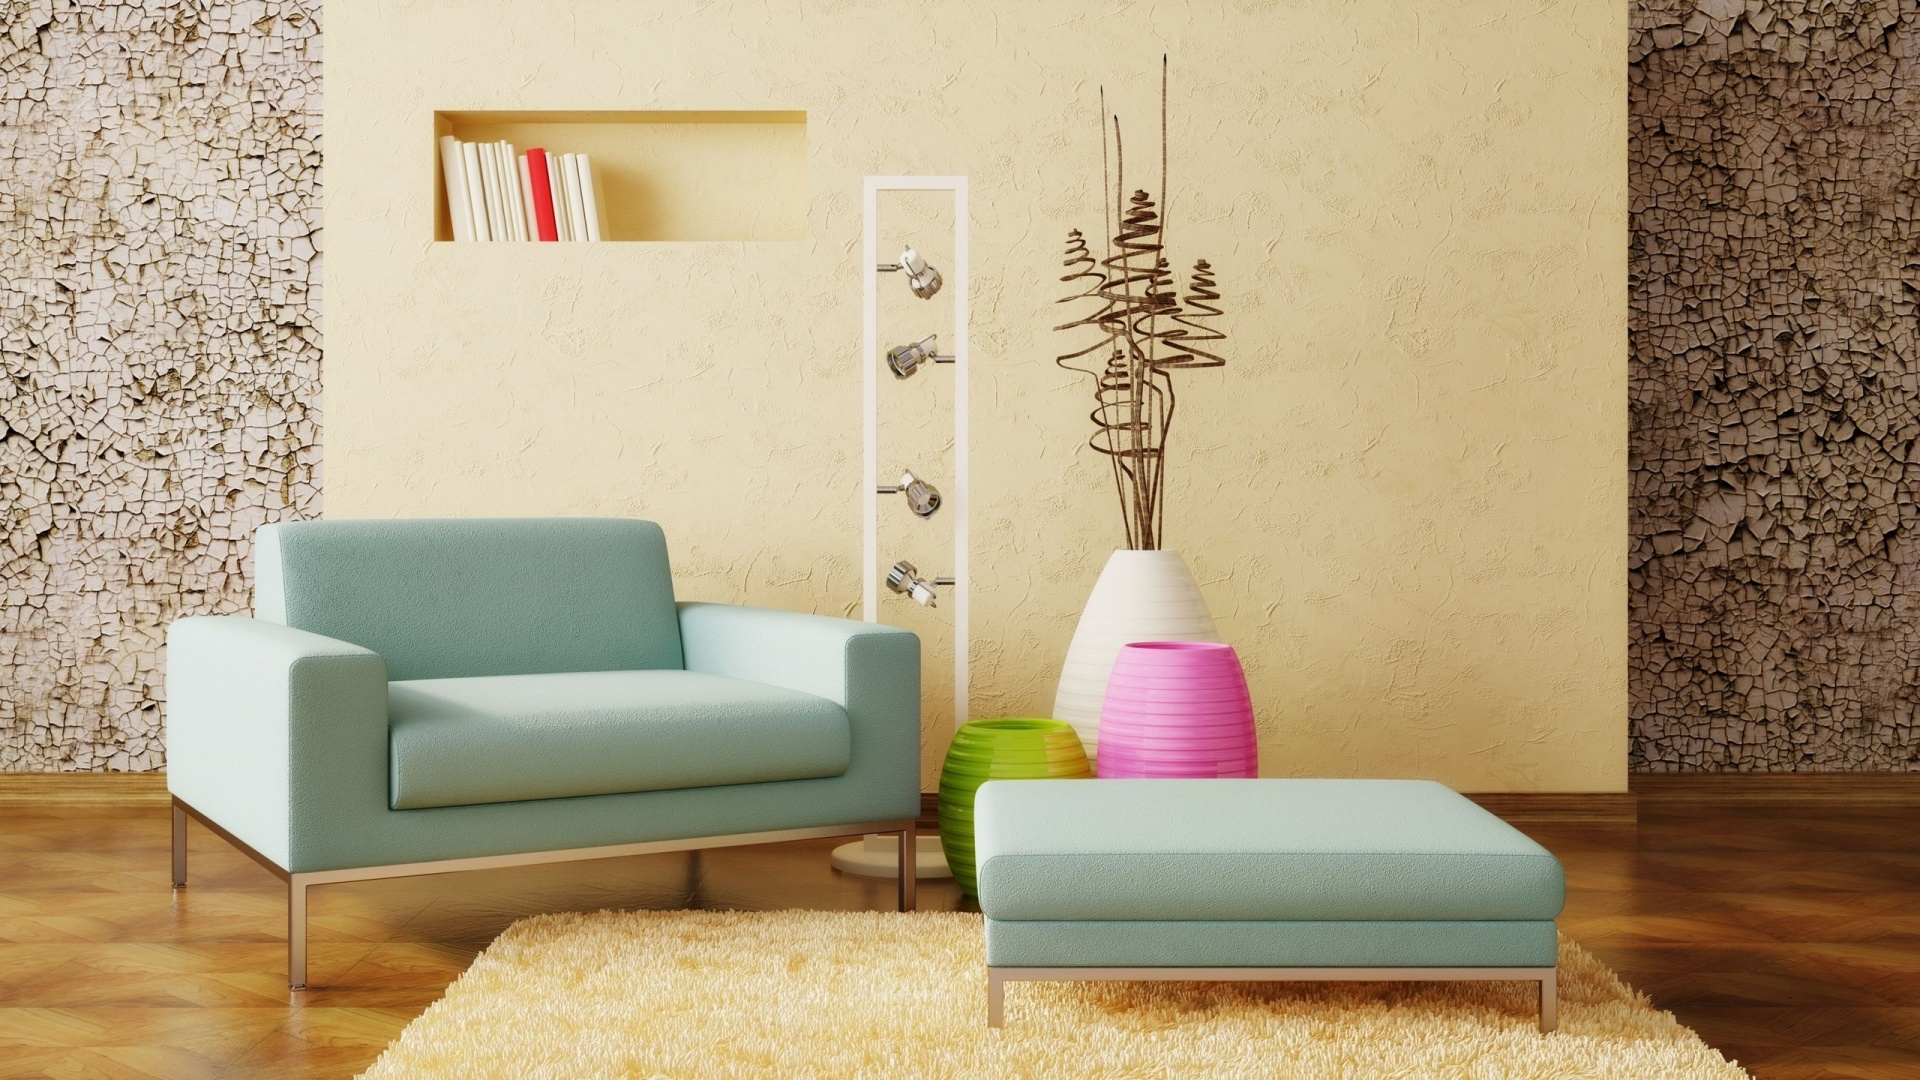 Home Decoration Wallpaper